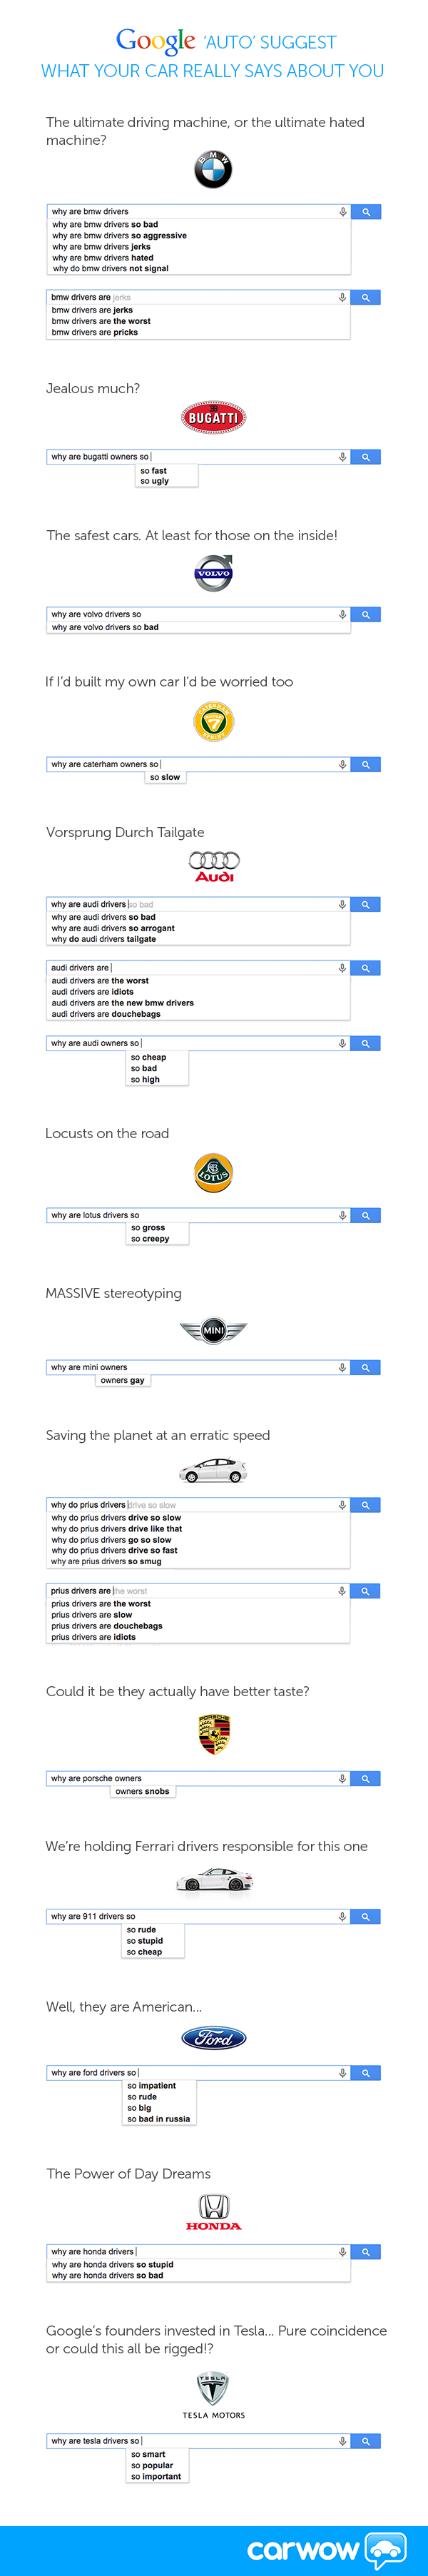 carwow autosuggest - what your car really says about you